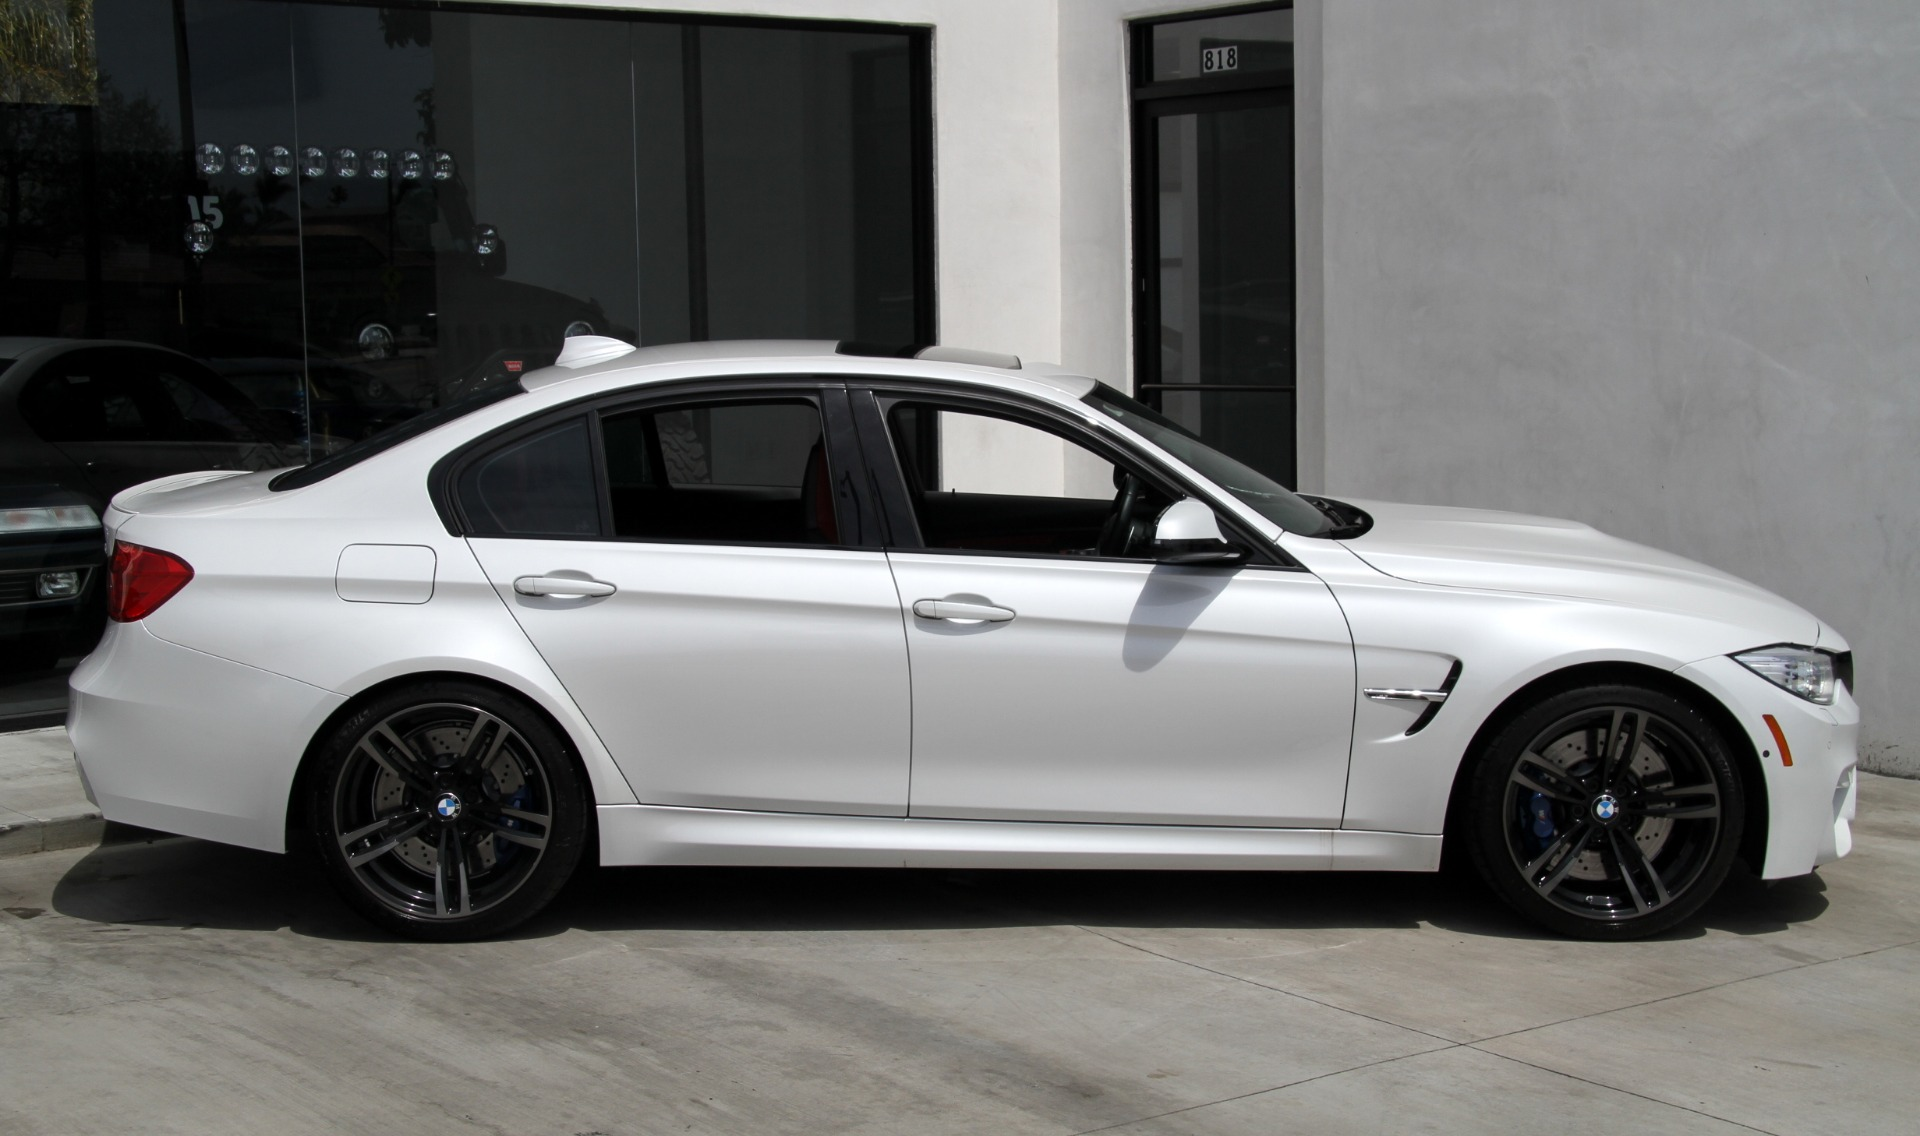 2015 bmw m3 stock 6166 for sale near redondo beach ca ca bmw dealer. Black Bedroom Furniture Sets. Home Design Ideas